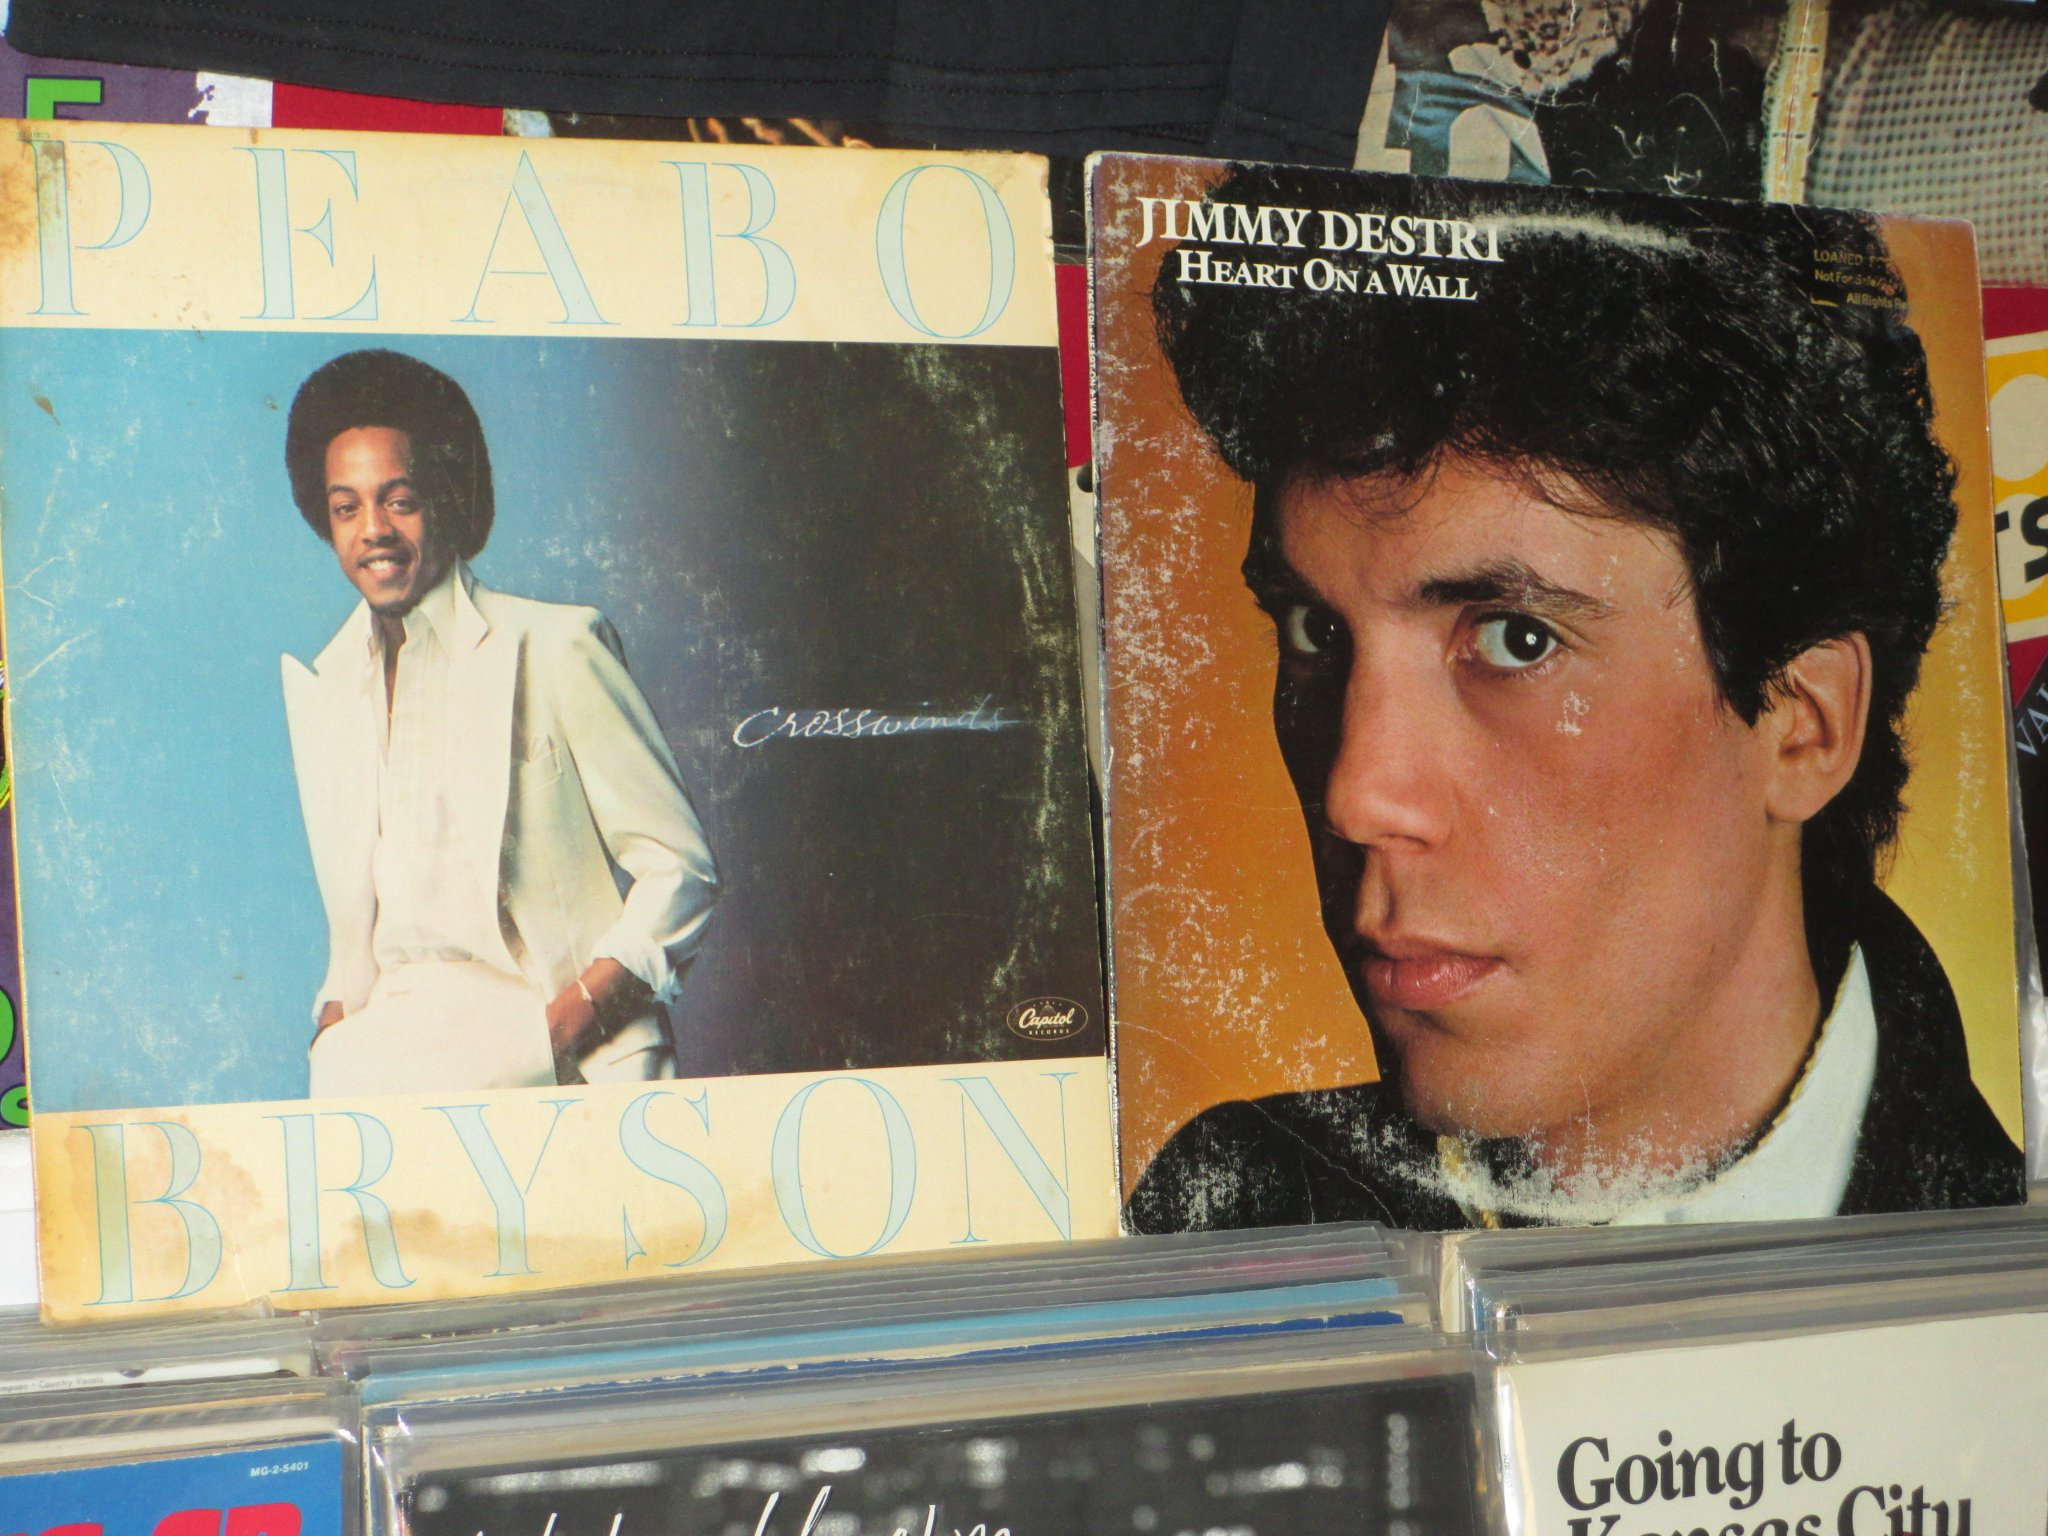 Happy Birthday to Peabo Bryson & Jimmy Destri (Blondie)